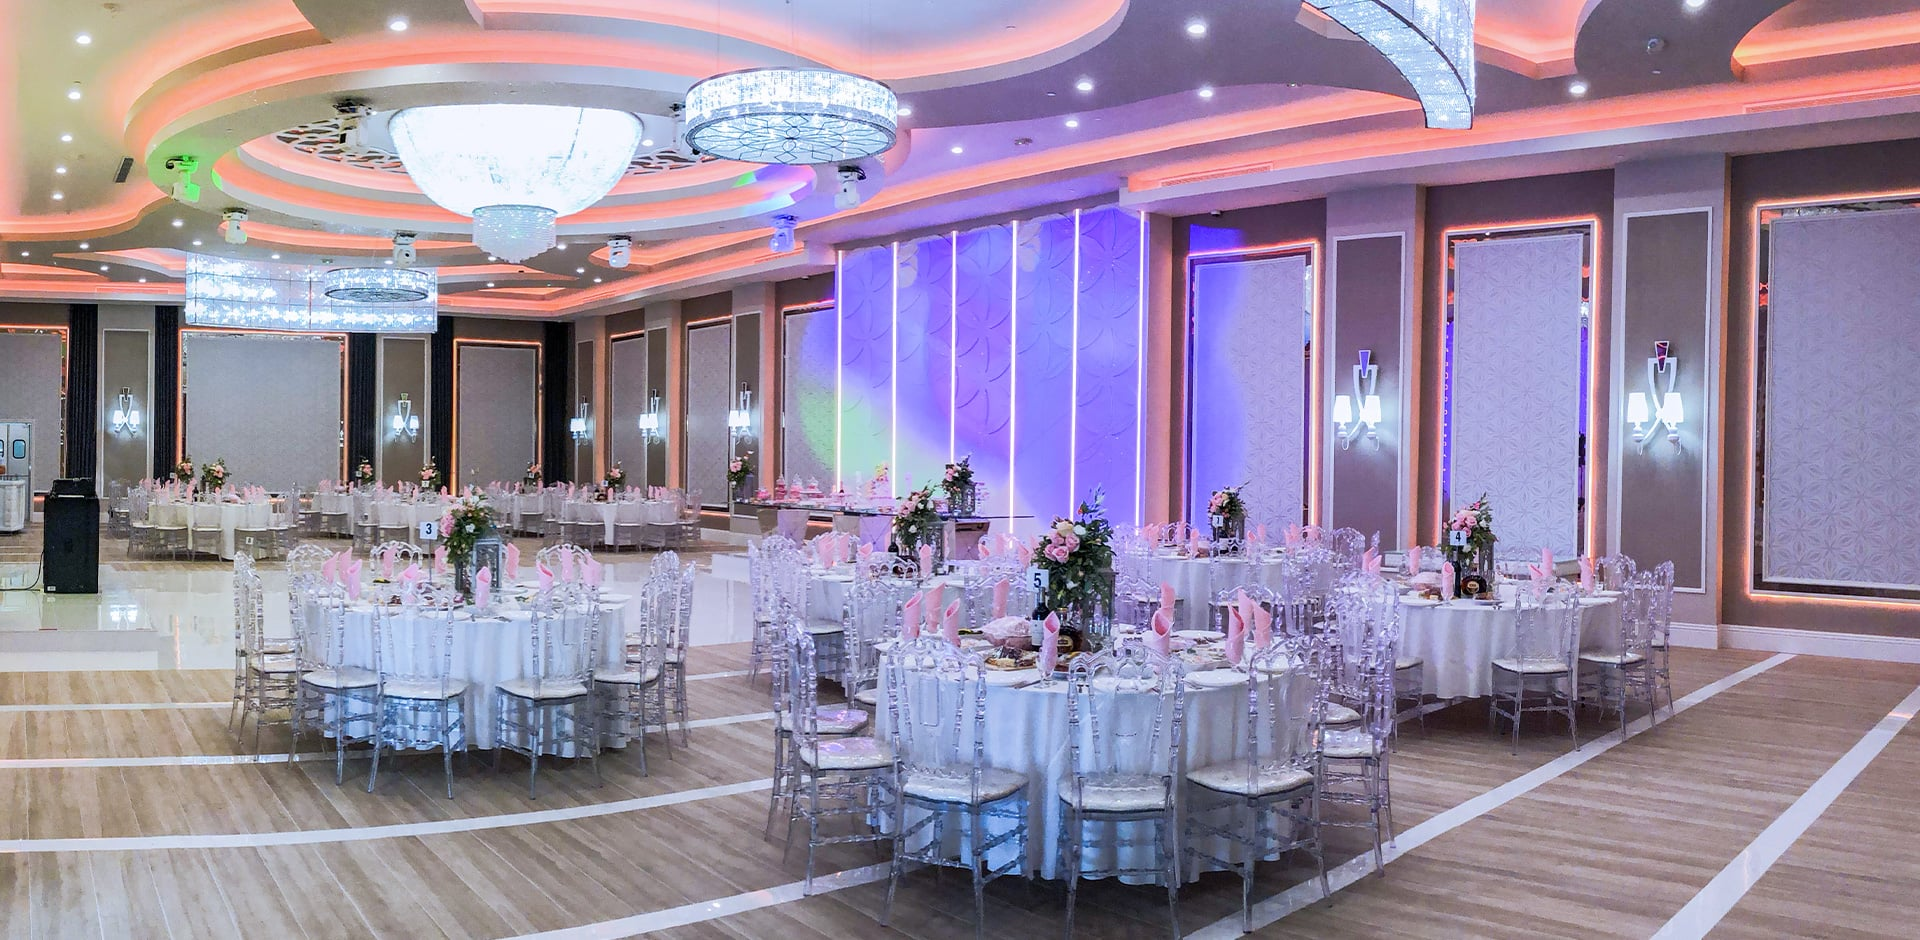 Avanti Banquet Hall - Venue - 01